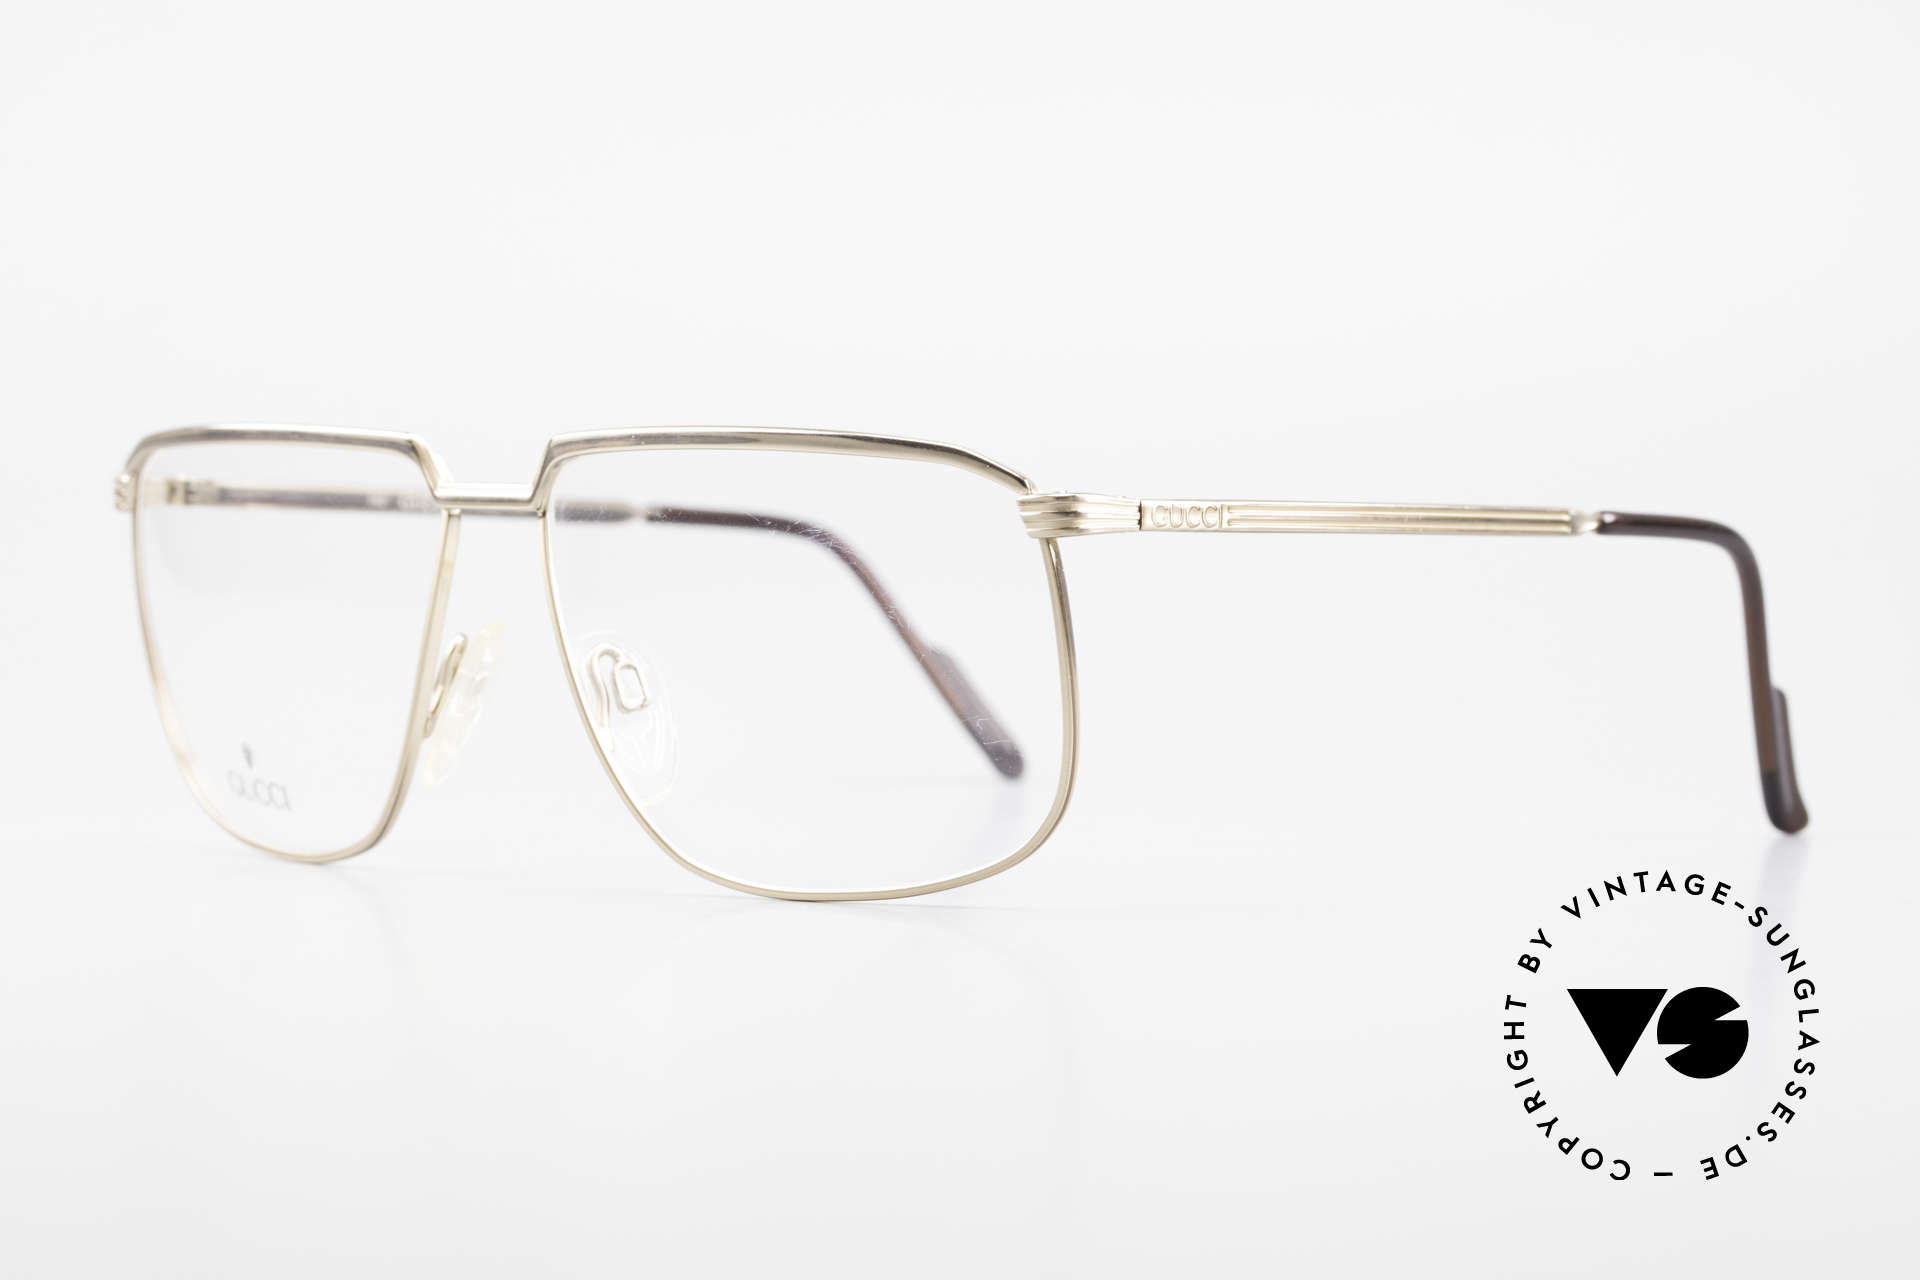 Gucci 1214 Classic 80's Eyeglasses Unisex, noble timless design, size 59/13, unisex specs, Made for Men and Women